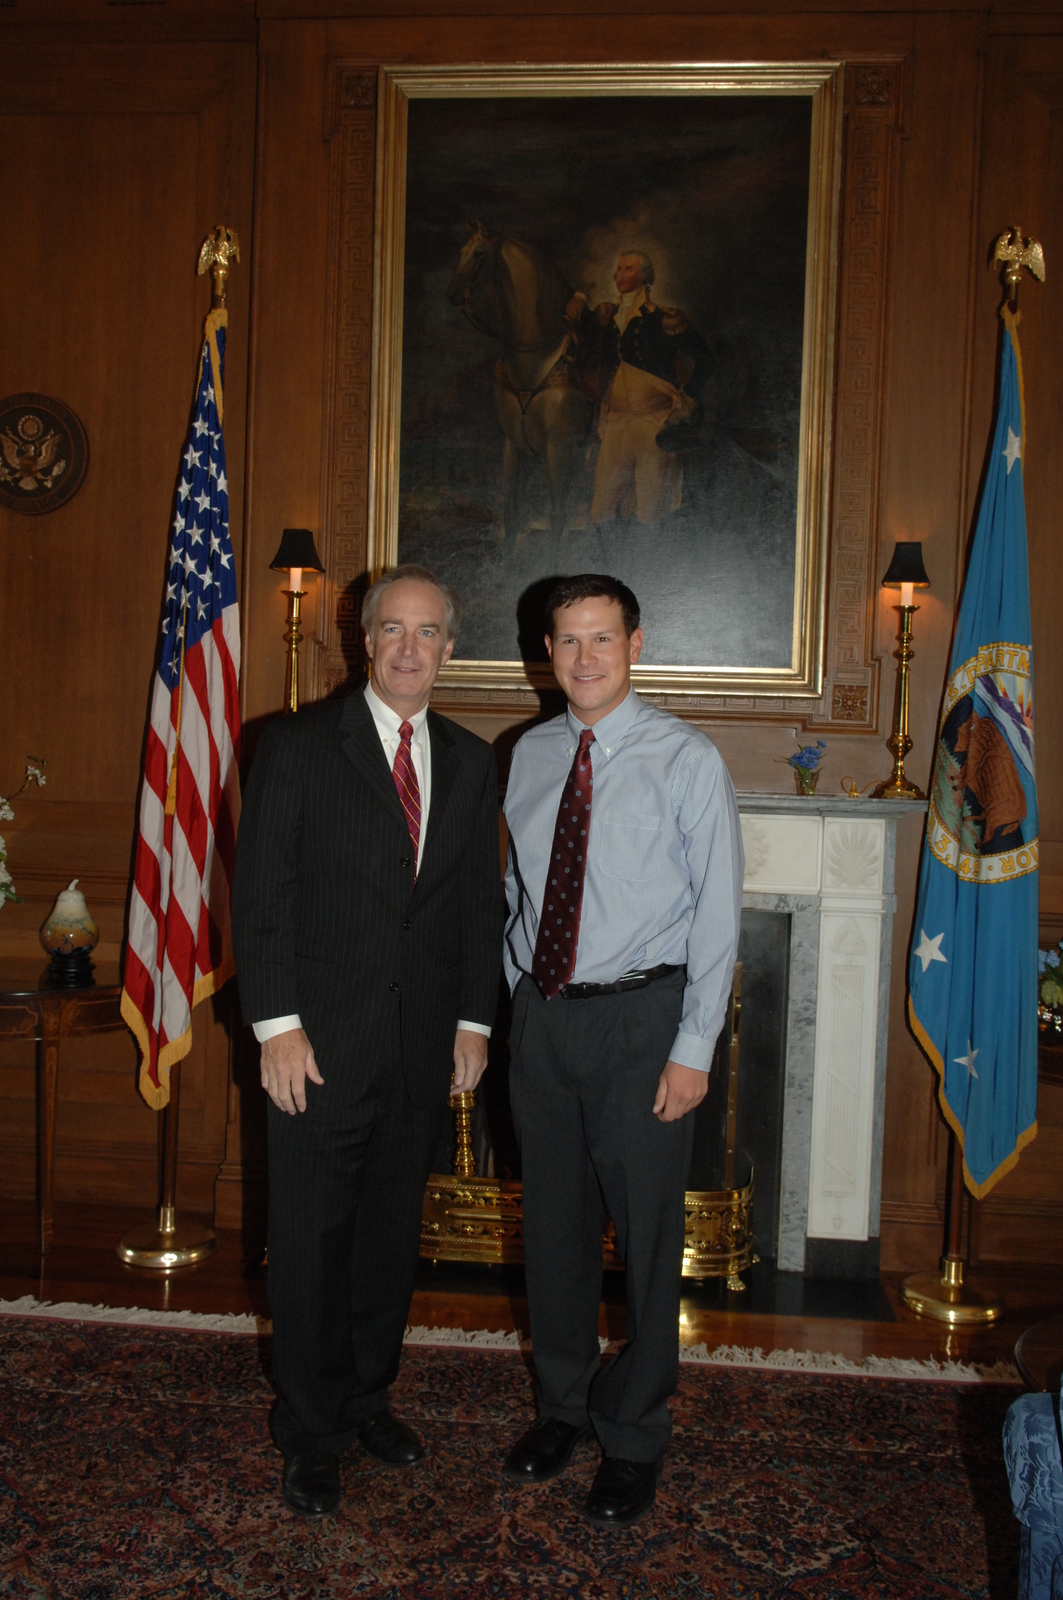 [Assignment: 48-DPA-11-16-07_SOI_K_Skurka_meet] Secretary Dirk Kempthorne meeting [at Main Interior with professional backpacker, tour guide and writer] Andrew Skurka, [and associate] [48-DPA-11-16-07_SOI_K_Skurka_meet_IOD_7664.JPG]